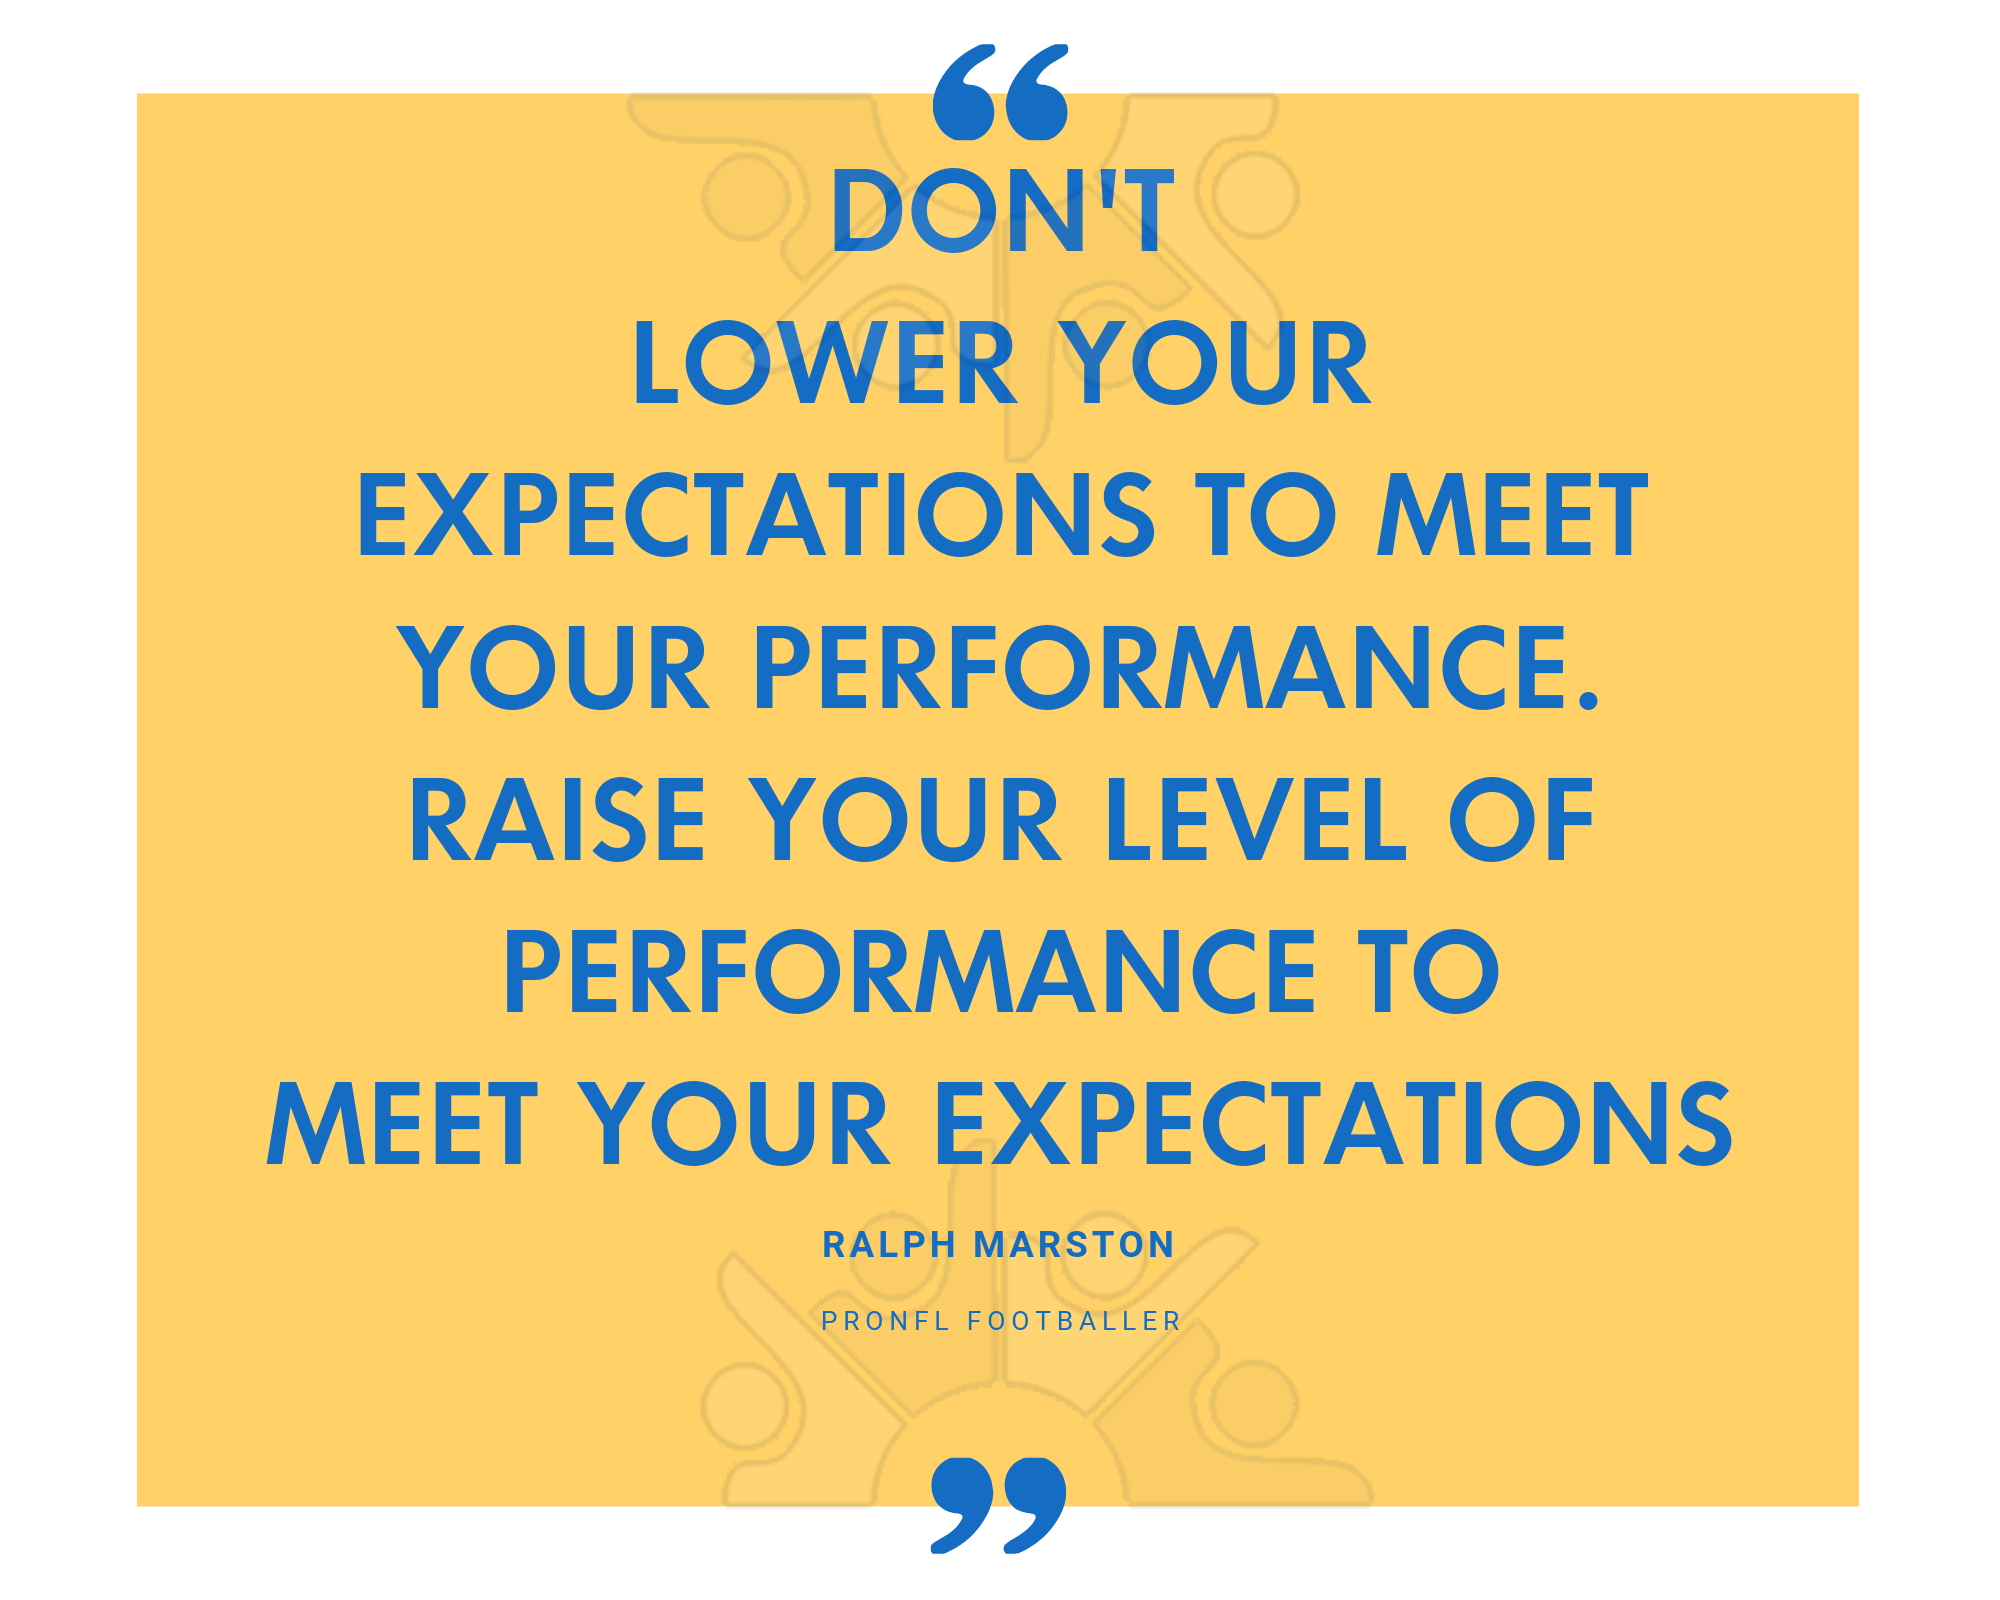 Dont lower your expectations to meet your performance. Raise your level of performance to meet your expectations